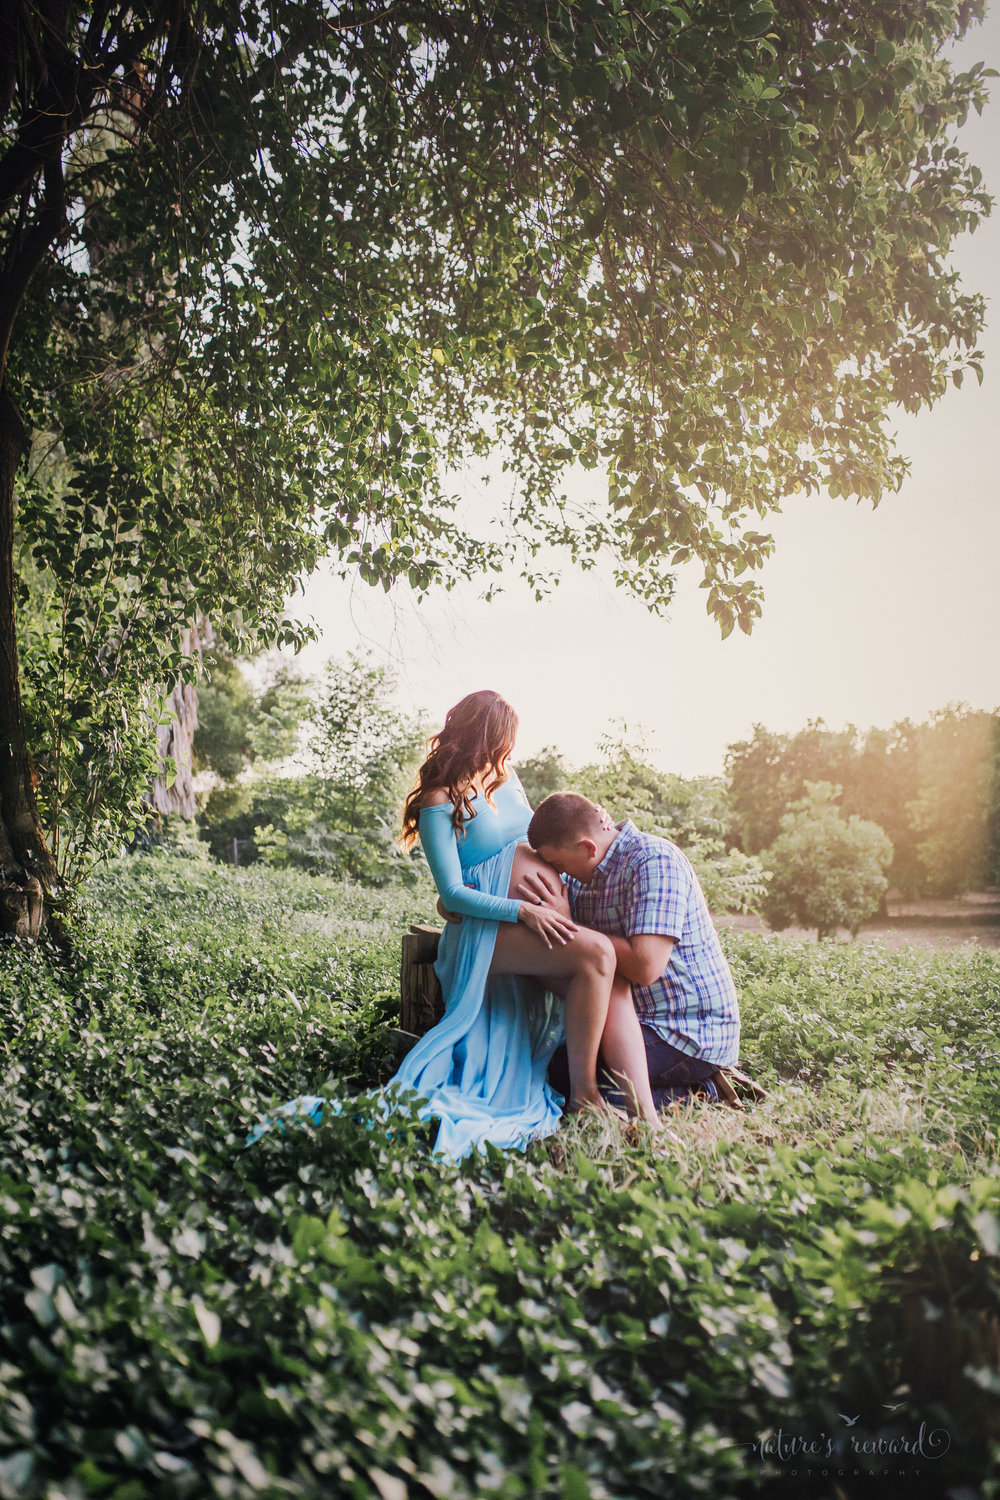 Beautiful expecting mother in a blue maternity gown with her husband in jeans and a blue plaid button down shirt in beautiful light are caught in this candid moment celebrating their miracle in a park setting in this maternity portrait taken by Nature's Reward Photography.